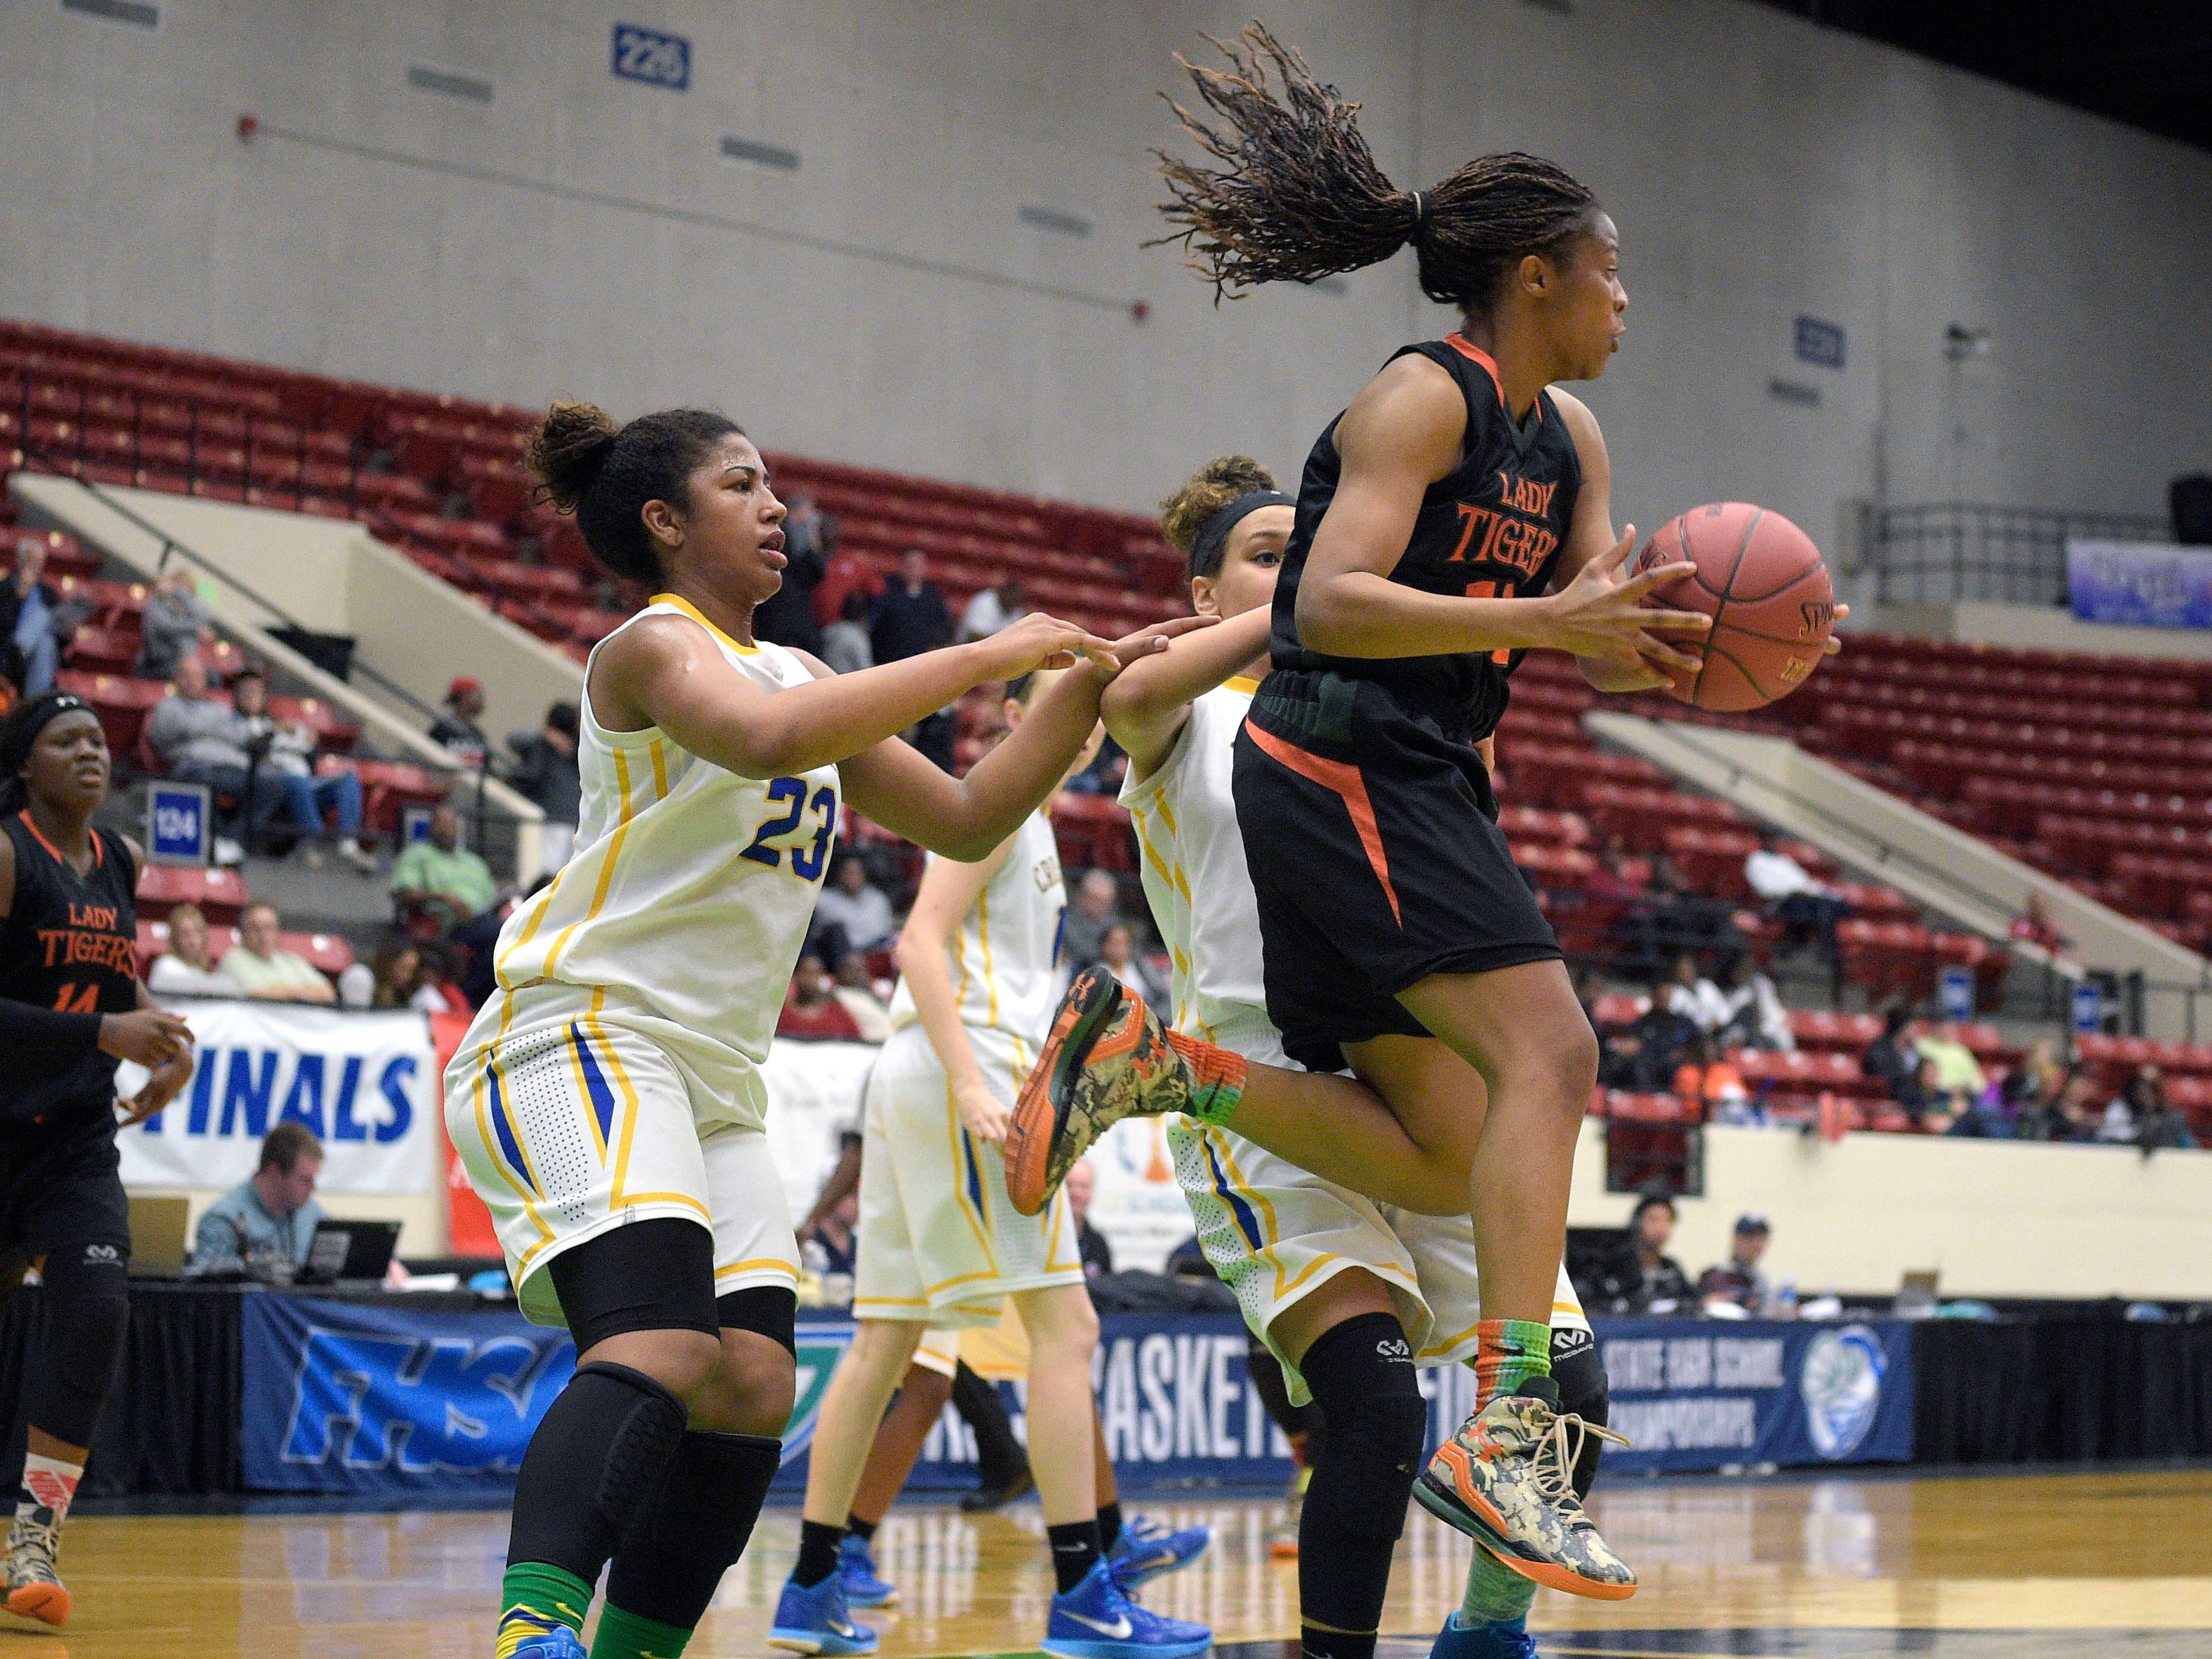 Dunbar's Kiara Desamours, right, grabs a rebound in front of Cardinal Newman's Milan Morris during Tuesday night's girls basketball Class 4A semifinal game in Lakeland. Desamours finished with 14 points in the victory.